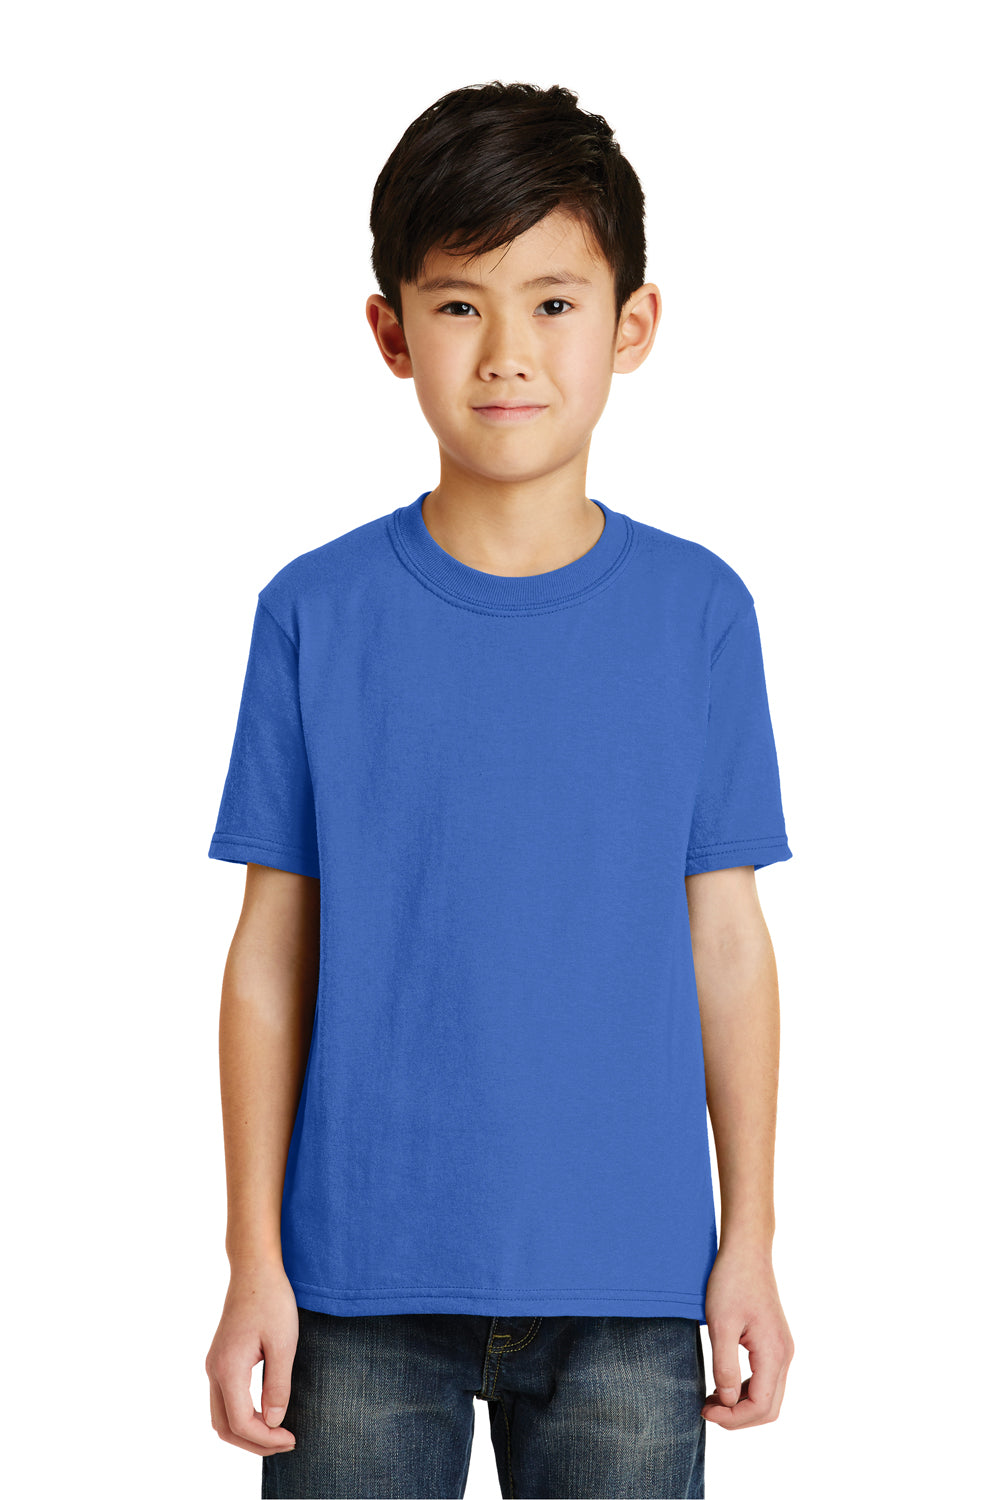 Port & Company PC55Y Youth Core Short Sleeve Crewneck T-Shirt Royal Blue Front